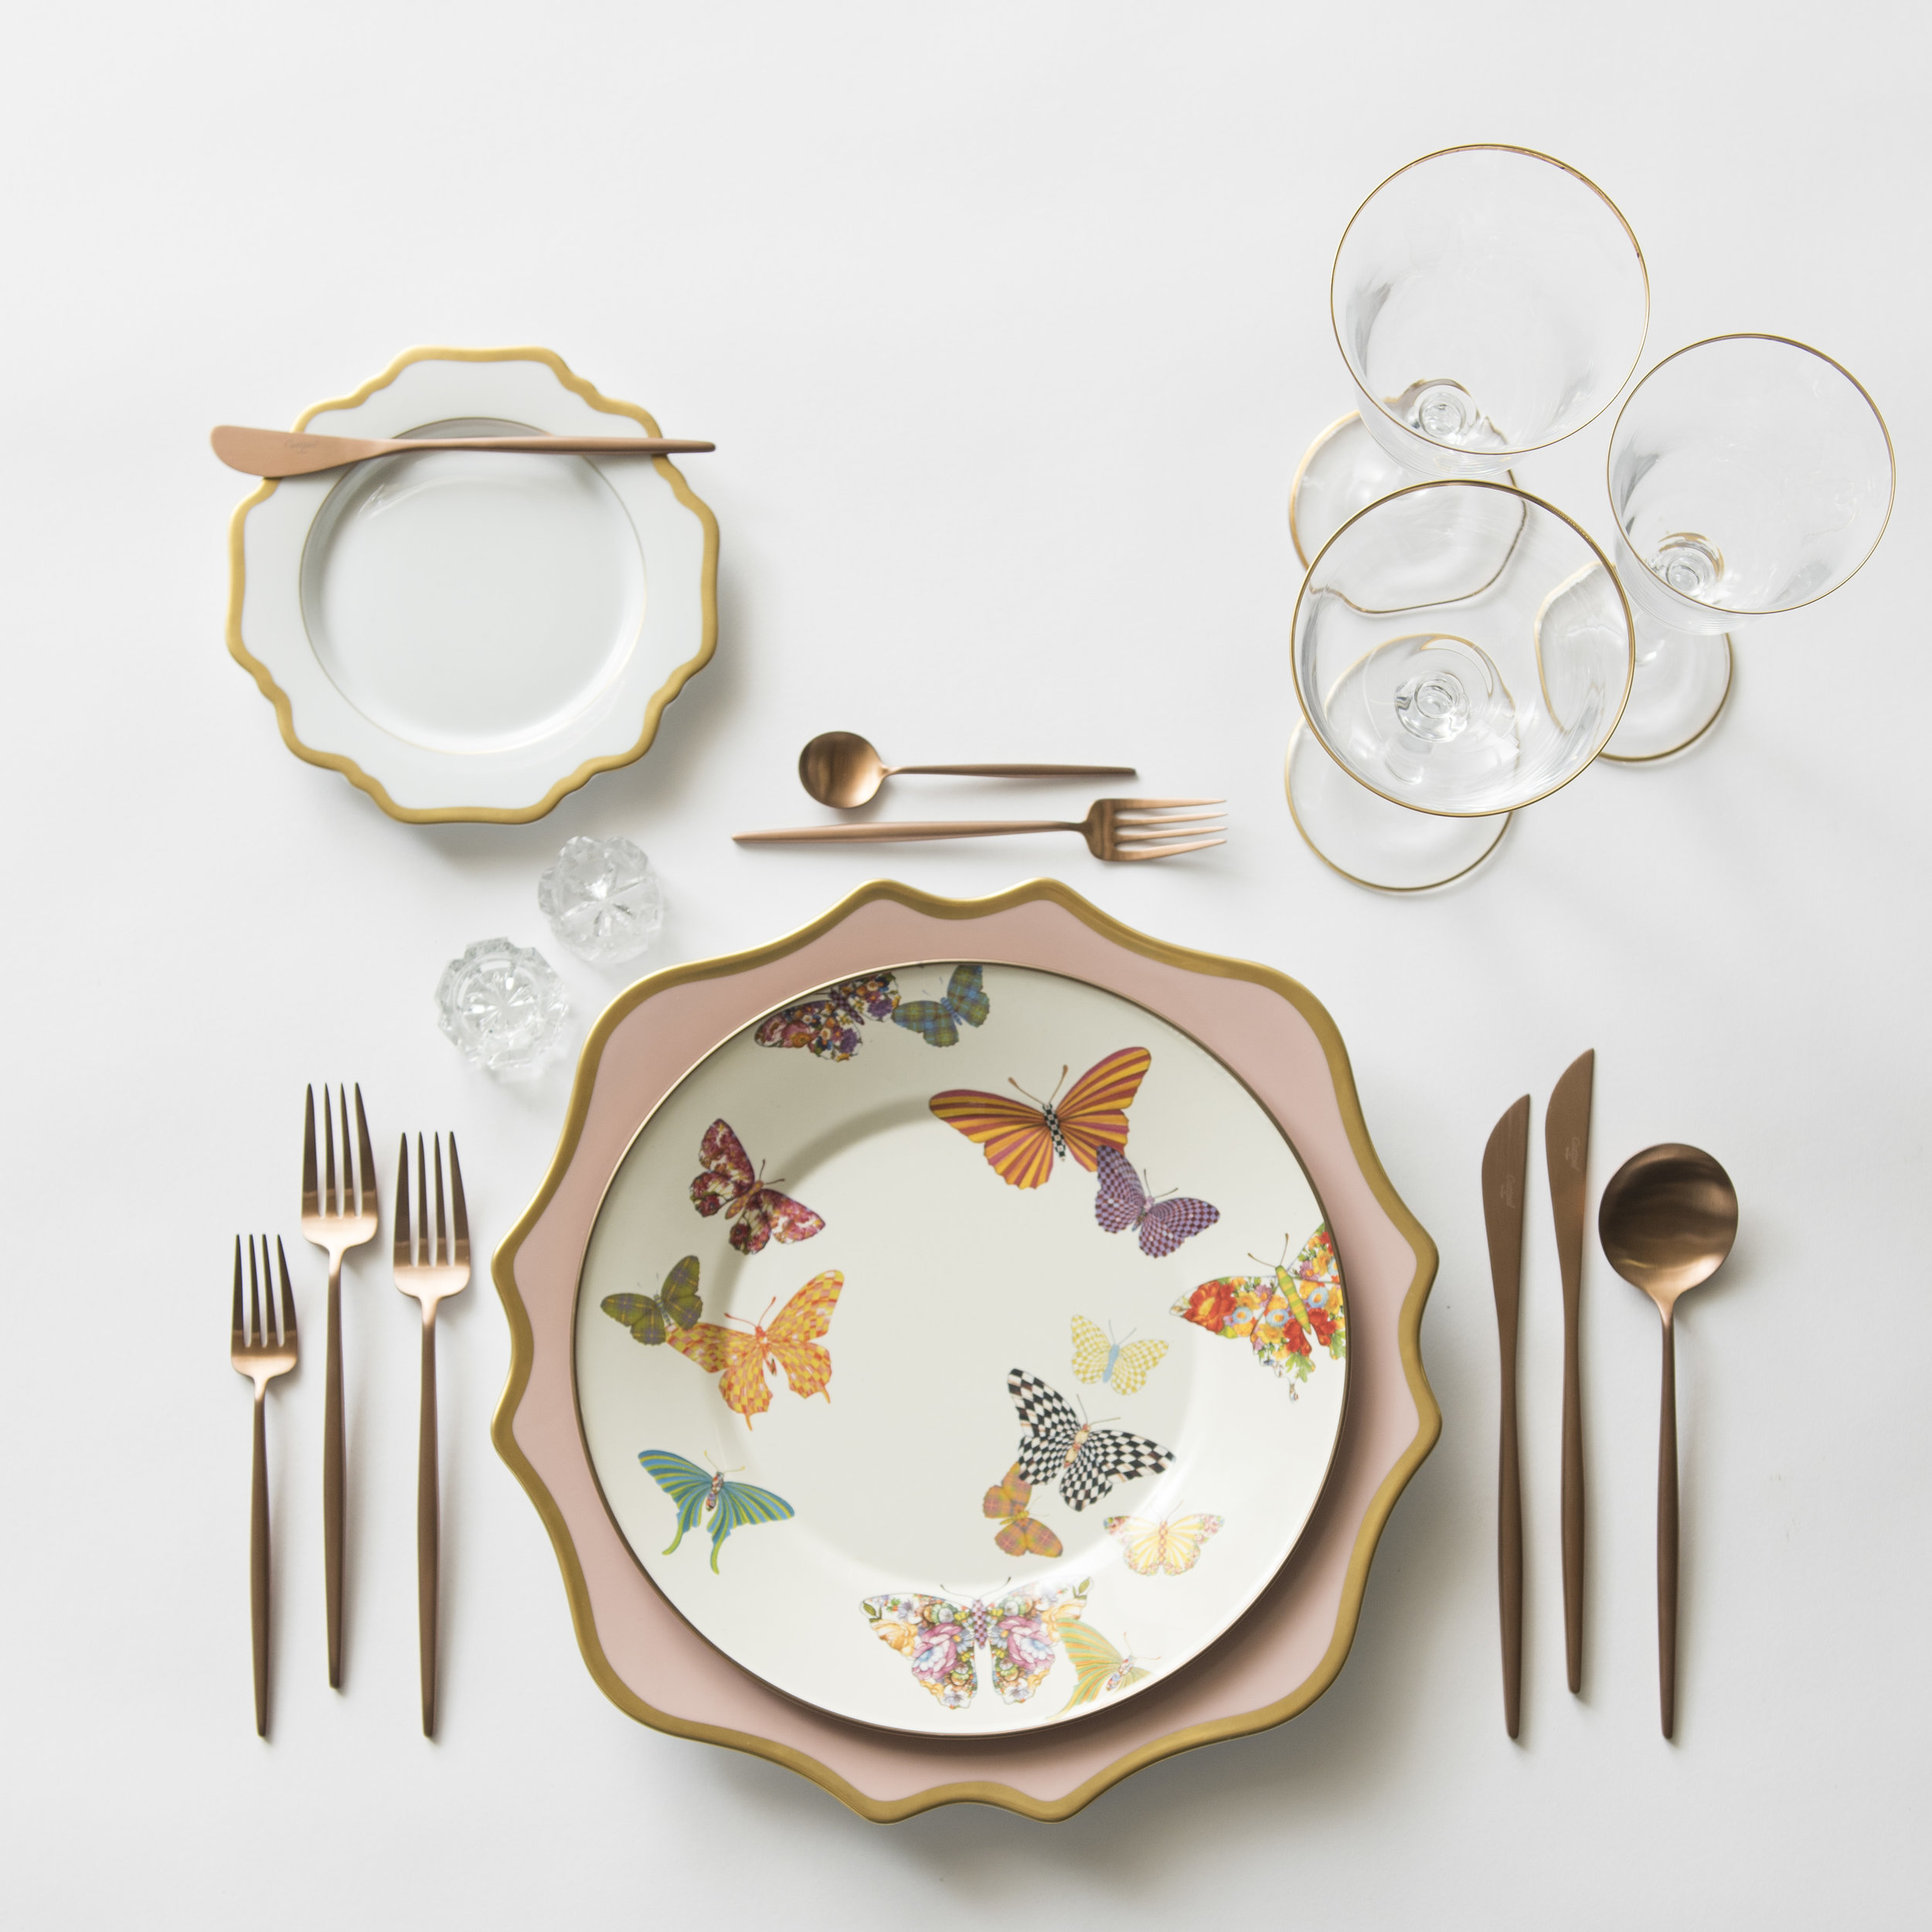 RENT: Anna Weatherley Chargers in Desert Rose/Gold + MacKenzie-Childs Butterfly Garden Collection + Anna Weatherley Dinnerware in White/Gold + Moon Flatware in Brushed Rose Gold + Chloe 24k Gold Rimmed Stemware + Antique Crystal Salt Cellars  SHOP:Anna Weatherley Dinnerware in White/Gold +Moon Flatware in Brushed Rose Gold + Chloe 24k Gold Rimmed Stemware